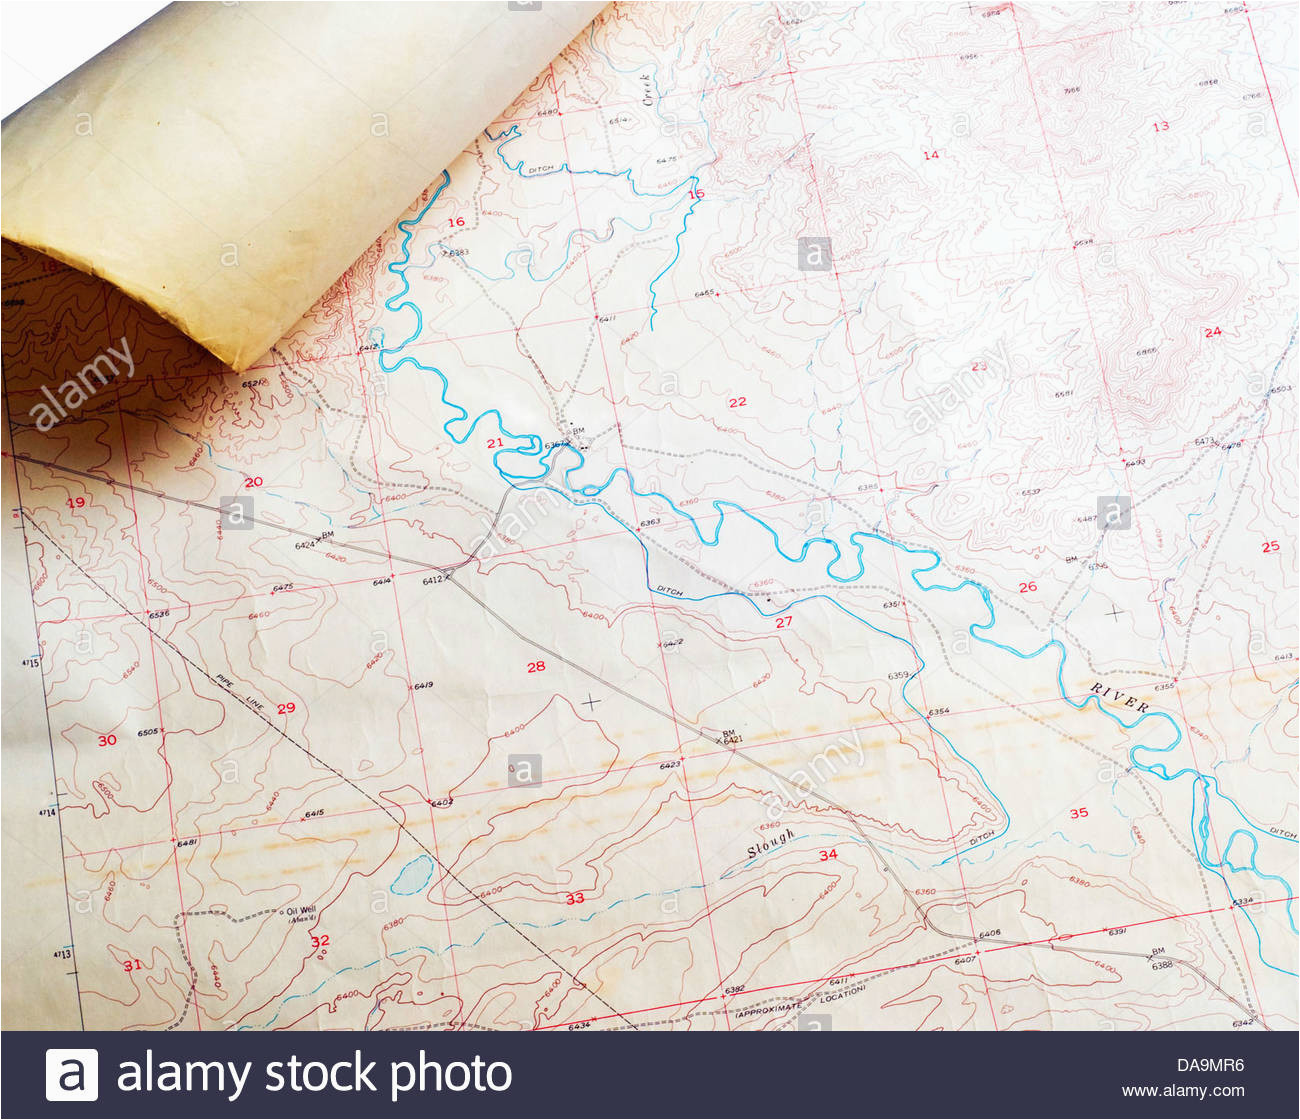 elevation map stock photos elevation map stock images alamy